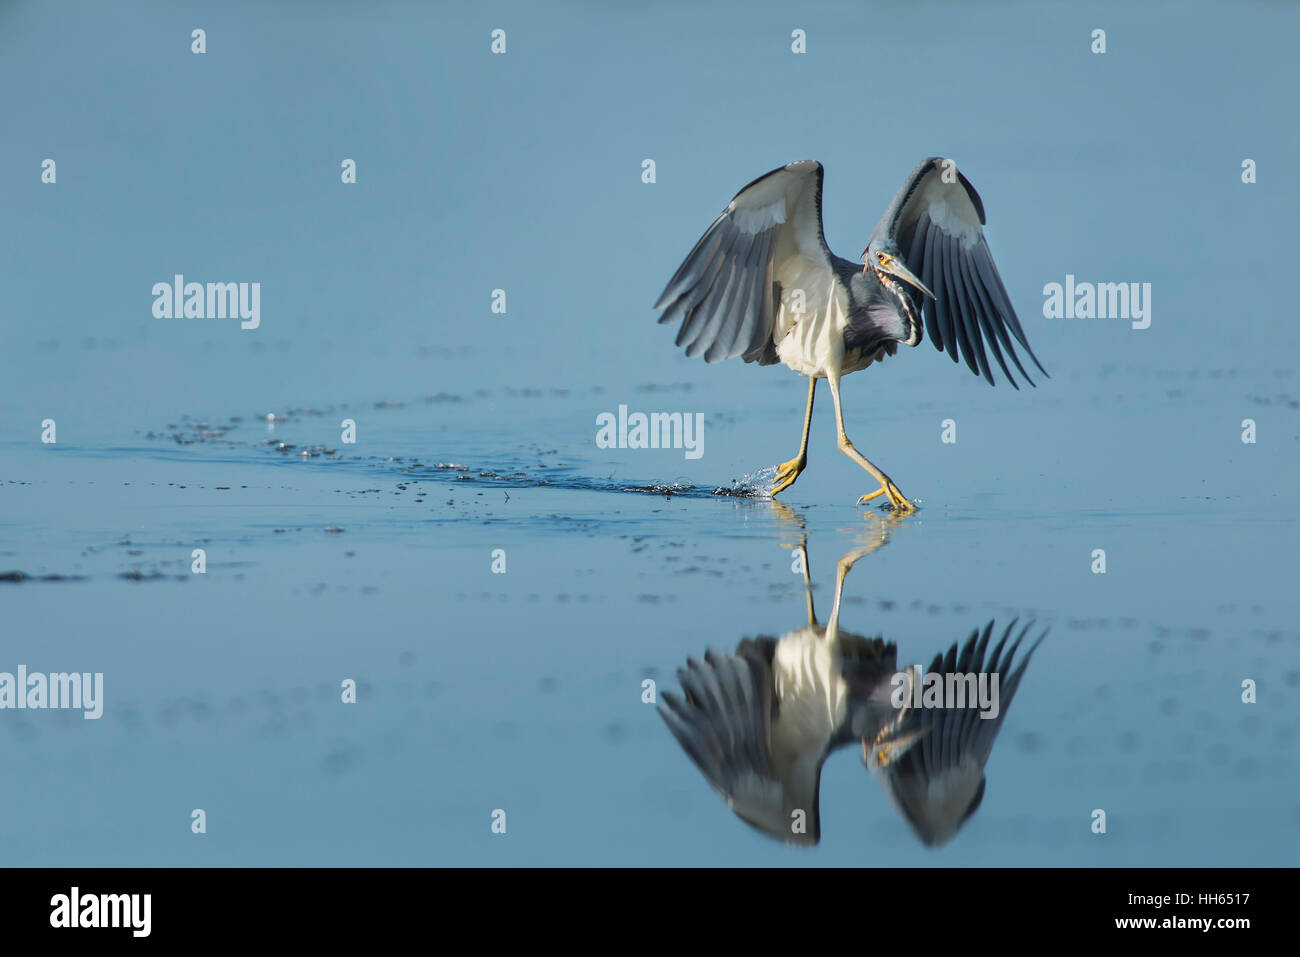 A Tri-colored Heron appears to be running on the surface of calm water with a reflection. - Stock Image